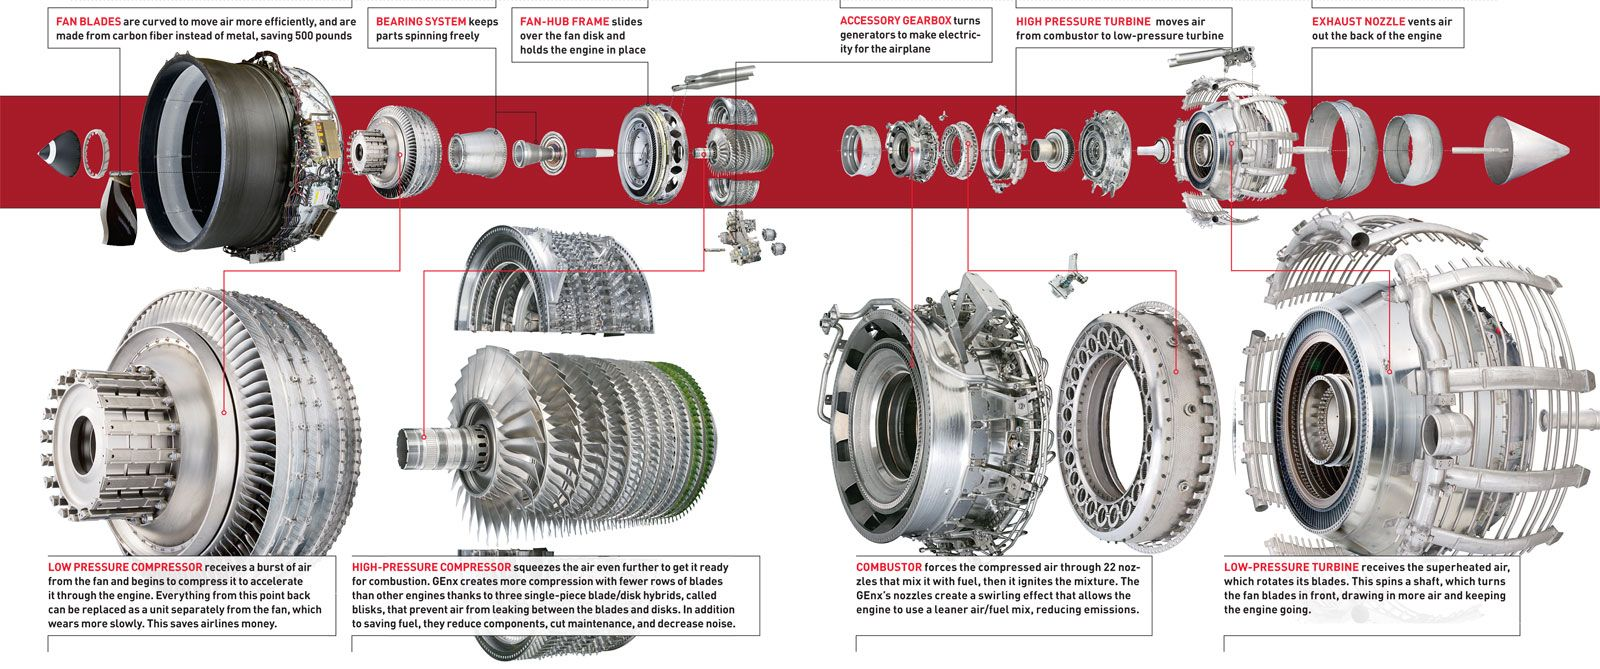 exploded jet engine view - Google Search Motor Engine, Jet Engine, Aircraft  Engine,